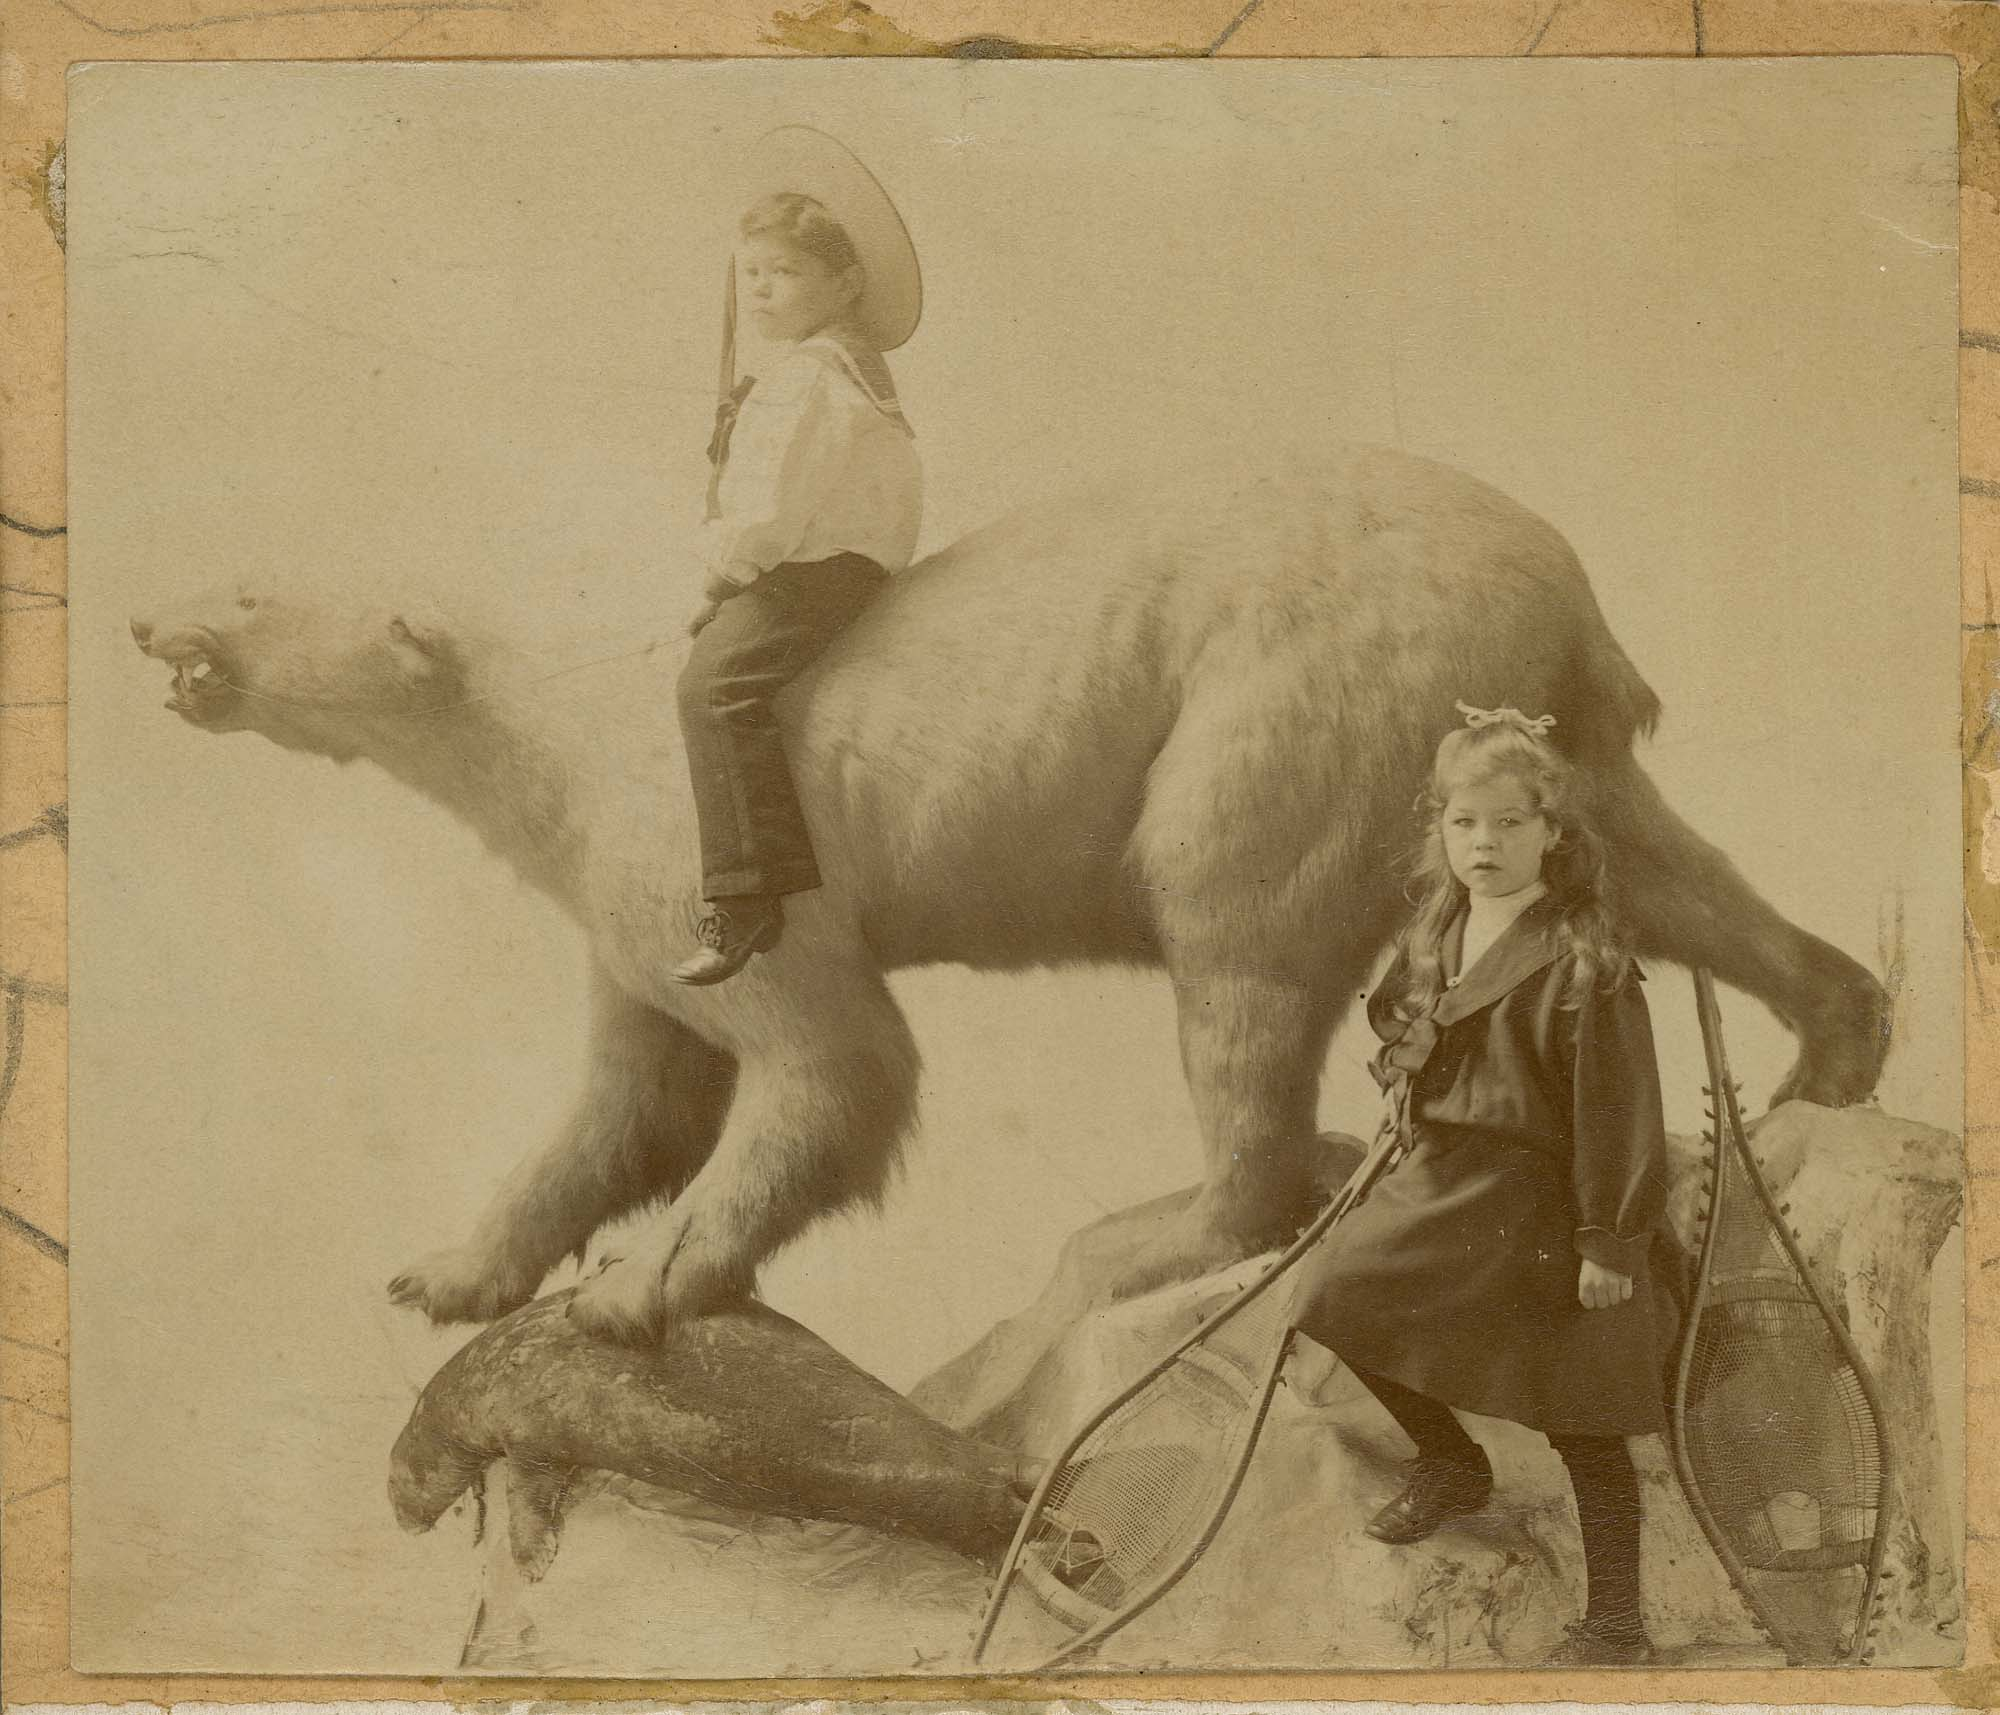 a black and white photo of tow Edwardian sailor suit and straw boater children riding a stuffed polar bear